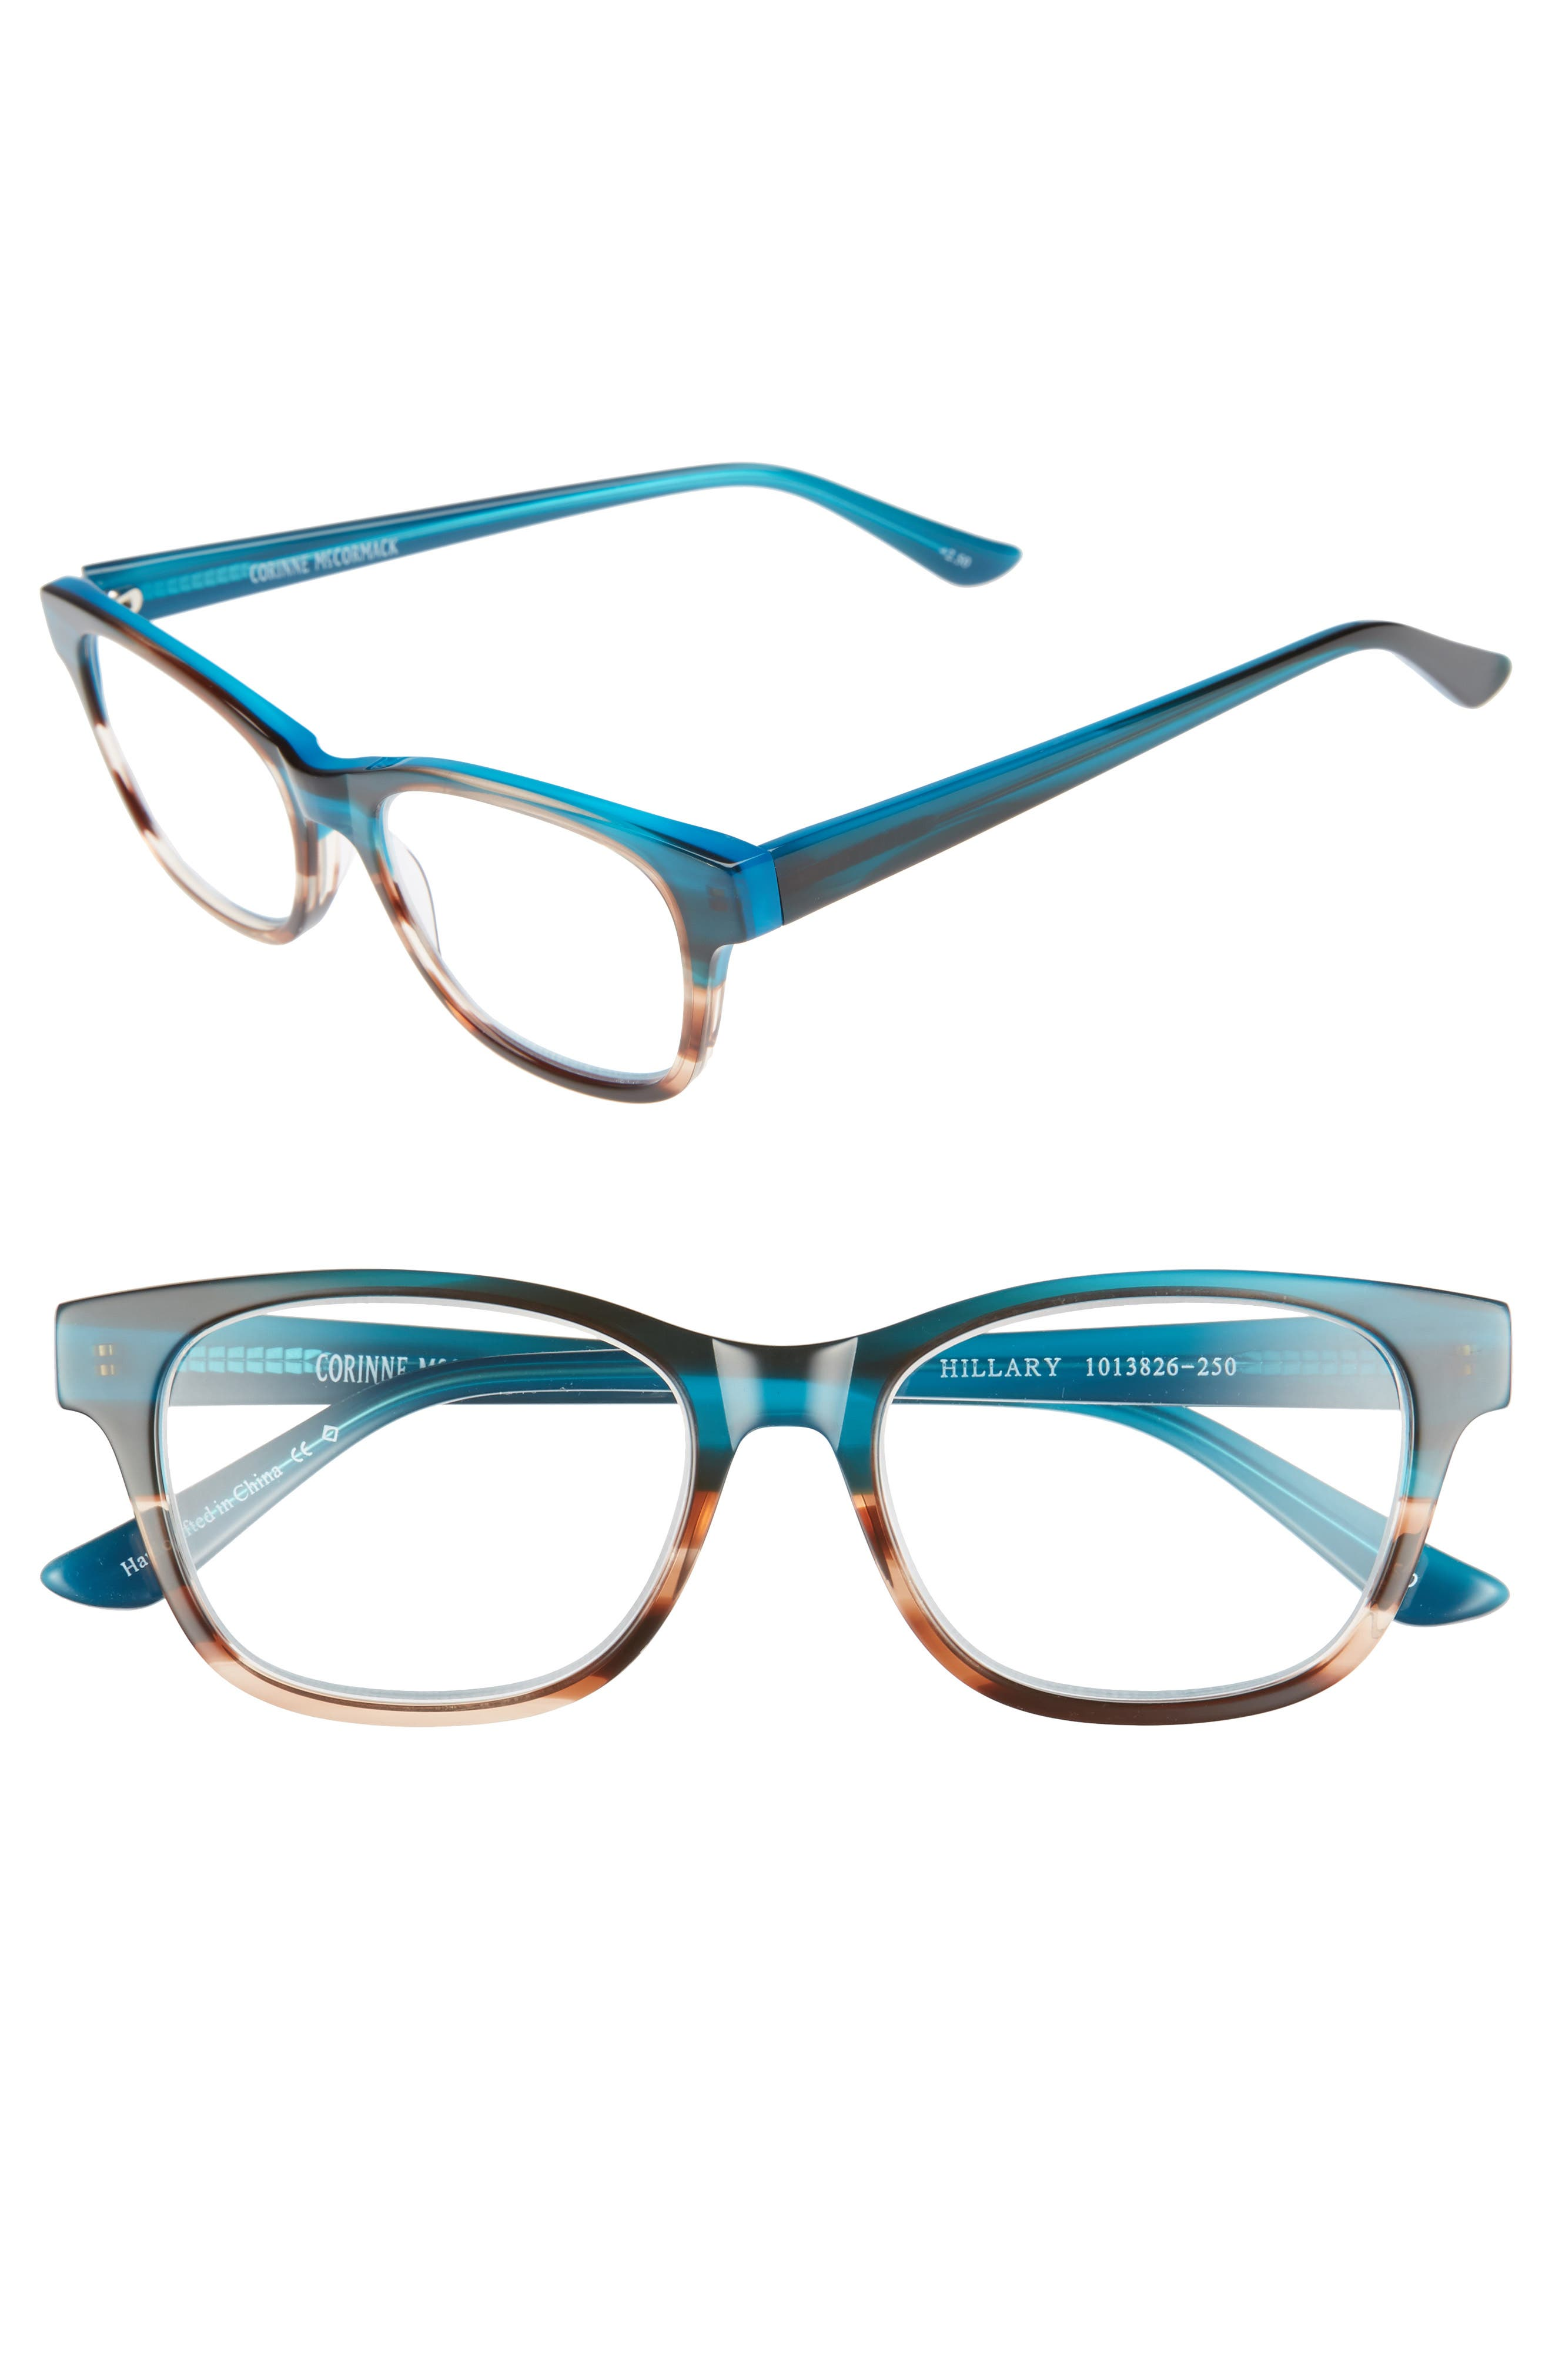 Main Image - Corinne McCormack Hillary 50mm Reading Glasses